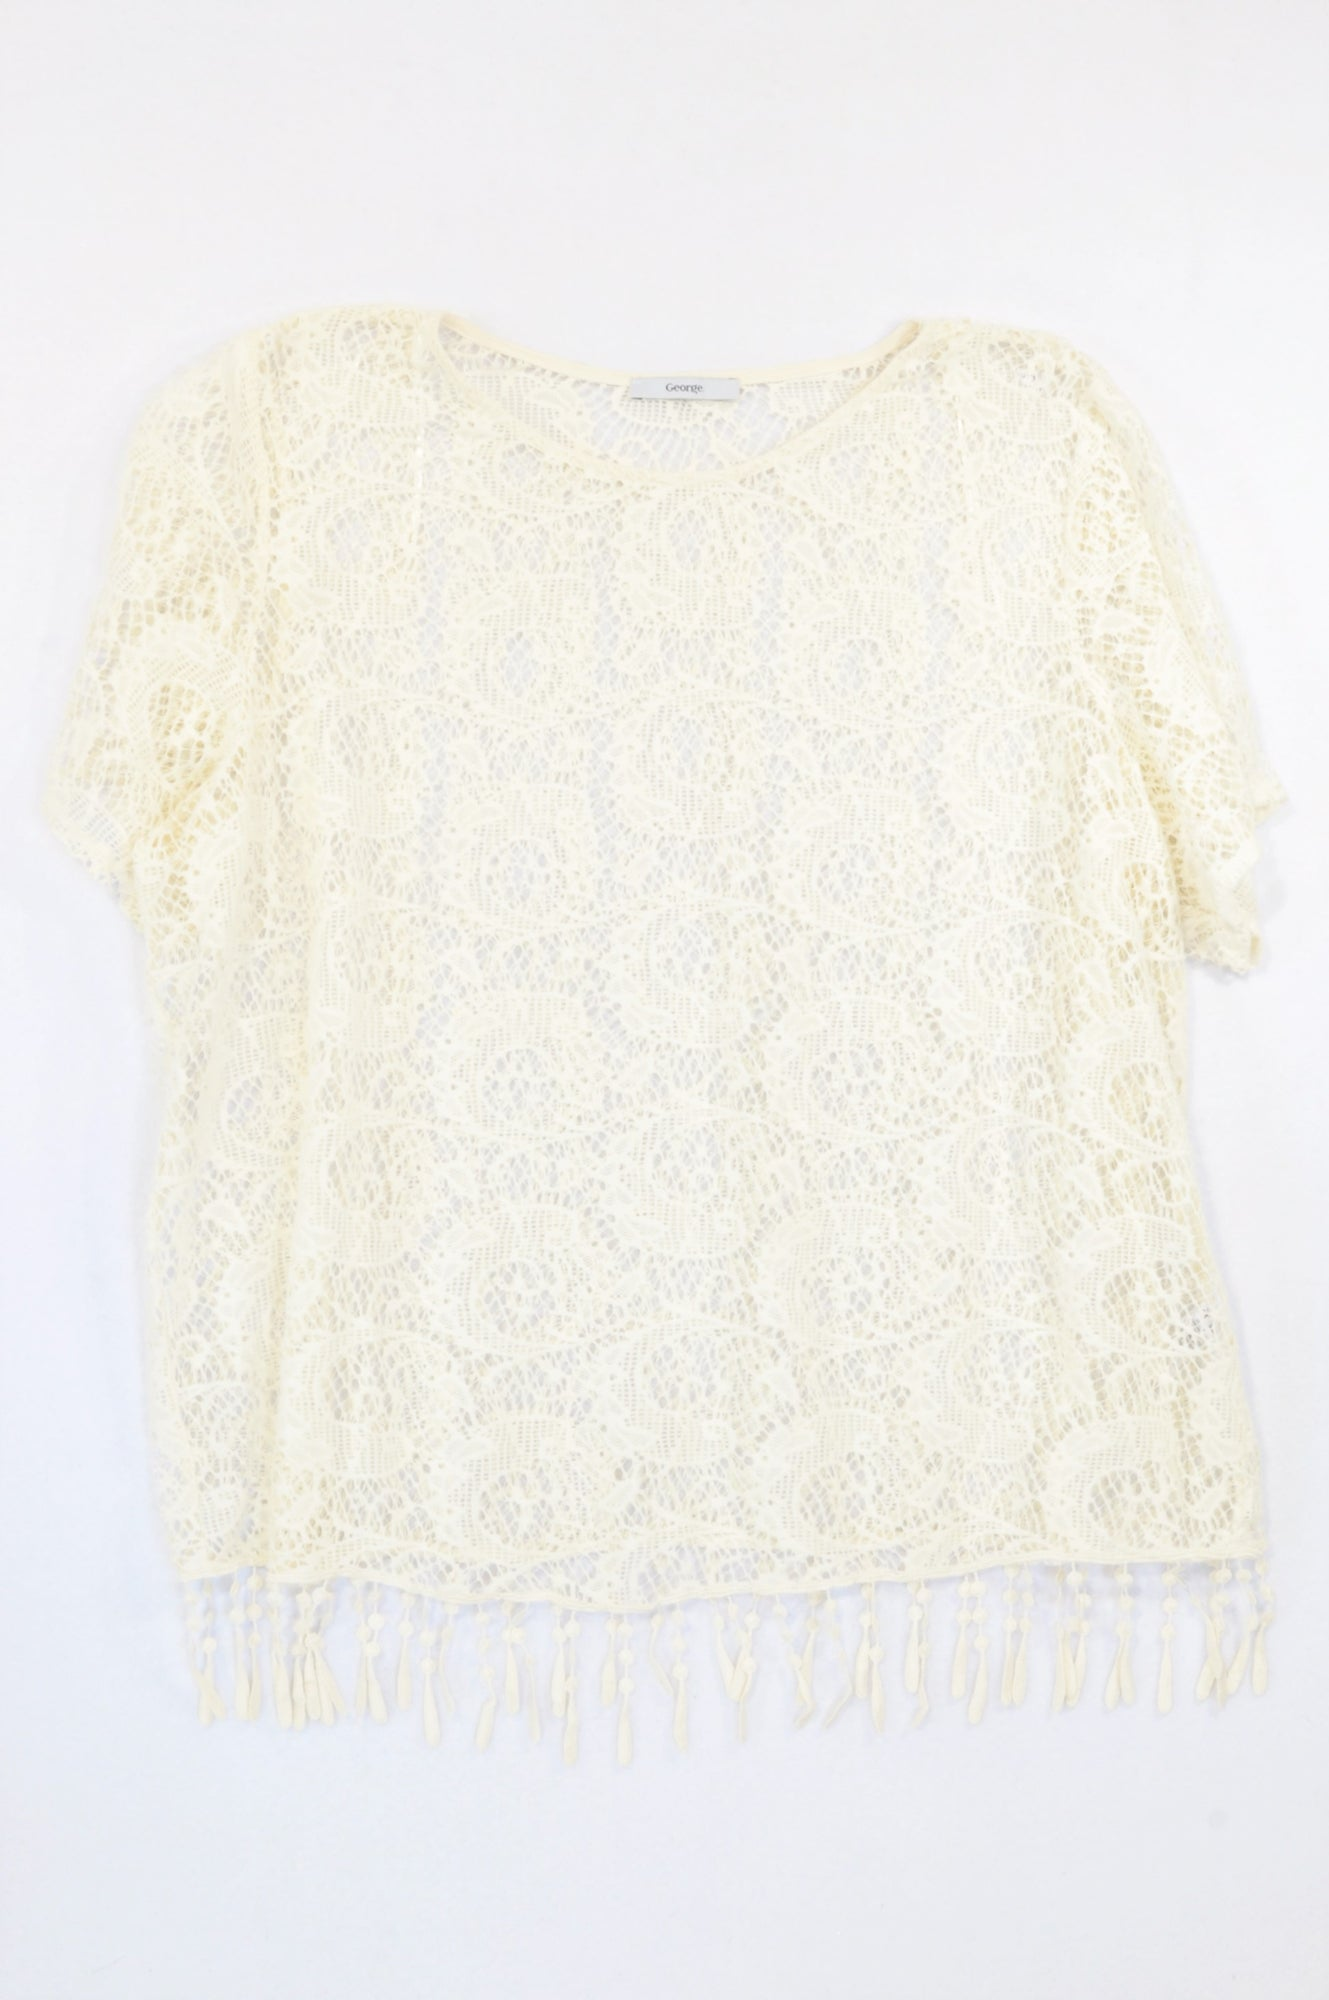 George Ivory Velour Lace Blouse Women Size 18